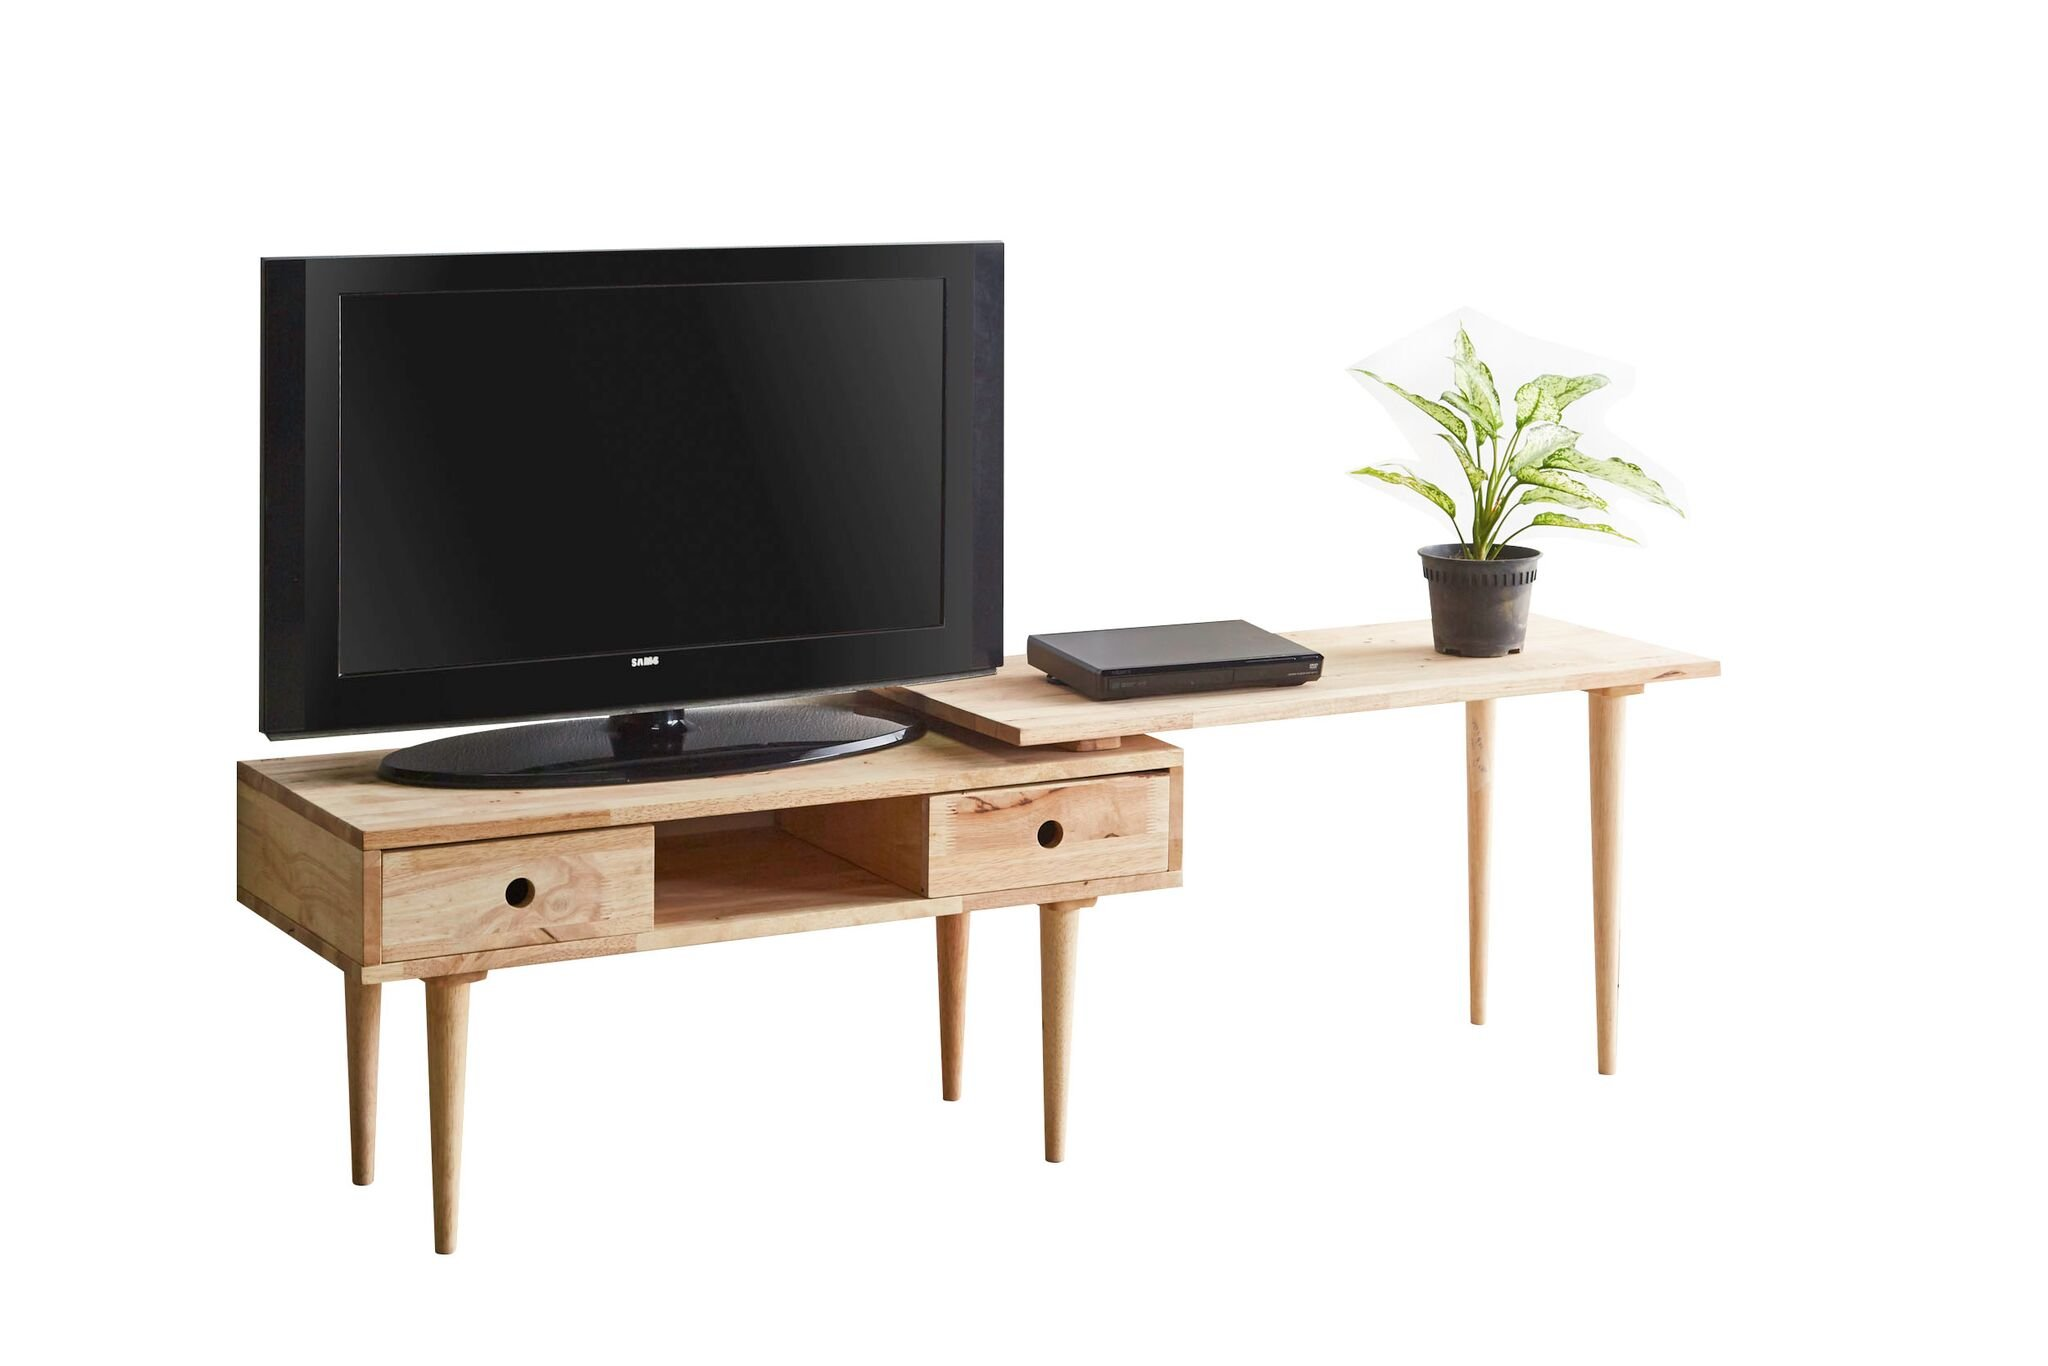 """Major-Q 35"""" Natural Wooden TV Stand/Coffee Table with Extension, 9081950 - Major-Q is a registered furniture trademark brand. Please search Major-Q for more high quality furniture related products All Major-Q Products will be covered with Limited Major-Q Warranty. Please buy with confidence. TV Stand w/Extension Top, 35"""" x 16"""" x 19""""H - tv-stands, living-room-furniture, living-room - 61xpej8UntL -"""